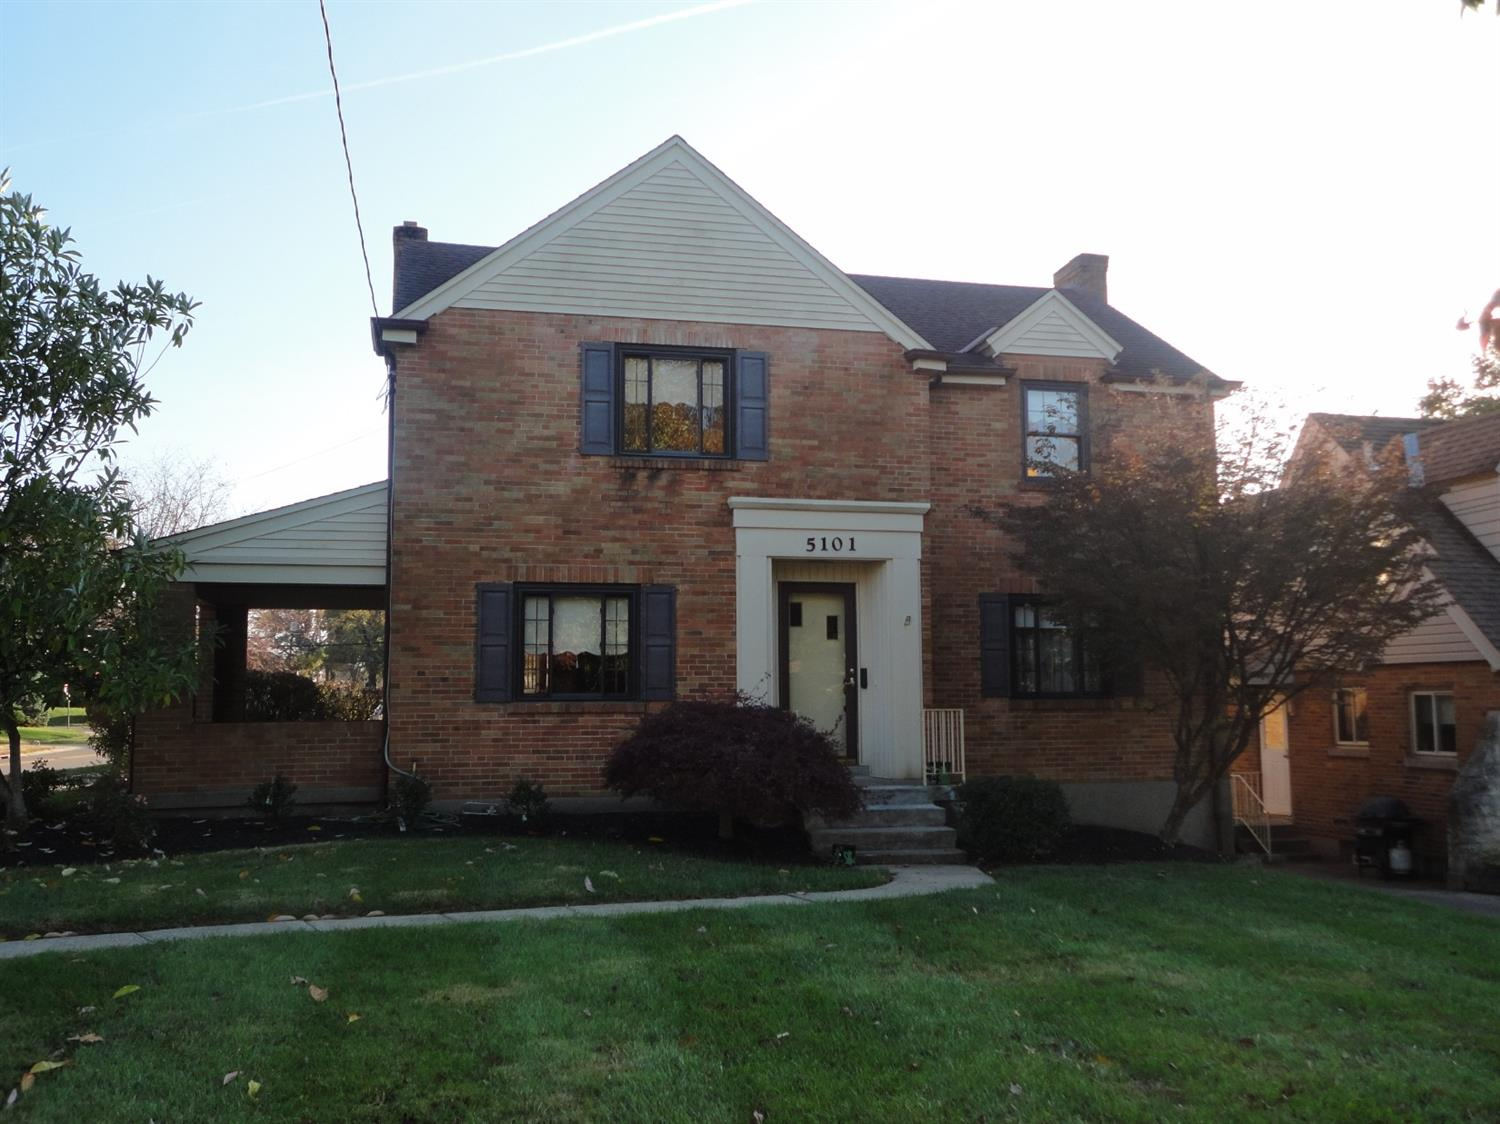 5101 Cleves Warsaw Pk